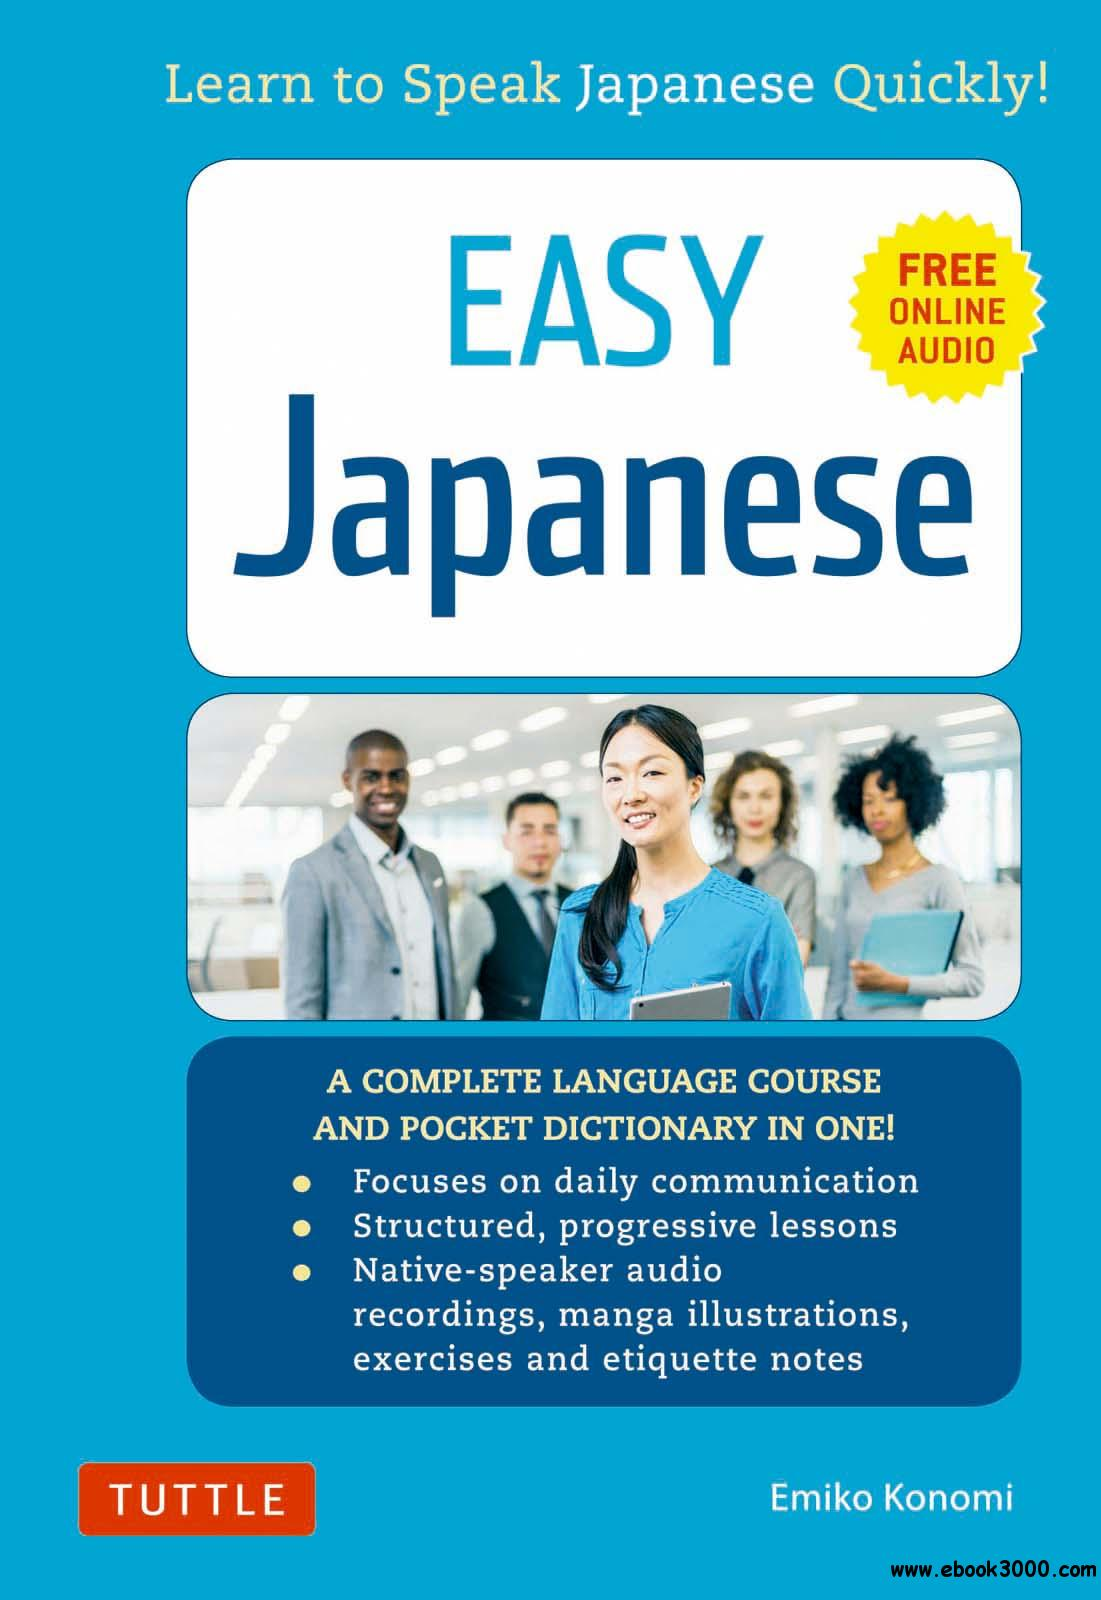 Easy Japanese: Learn to Speak Japanese Quickly! (With Dictionary, Manga Comics and Audio downloads Included)